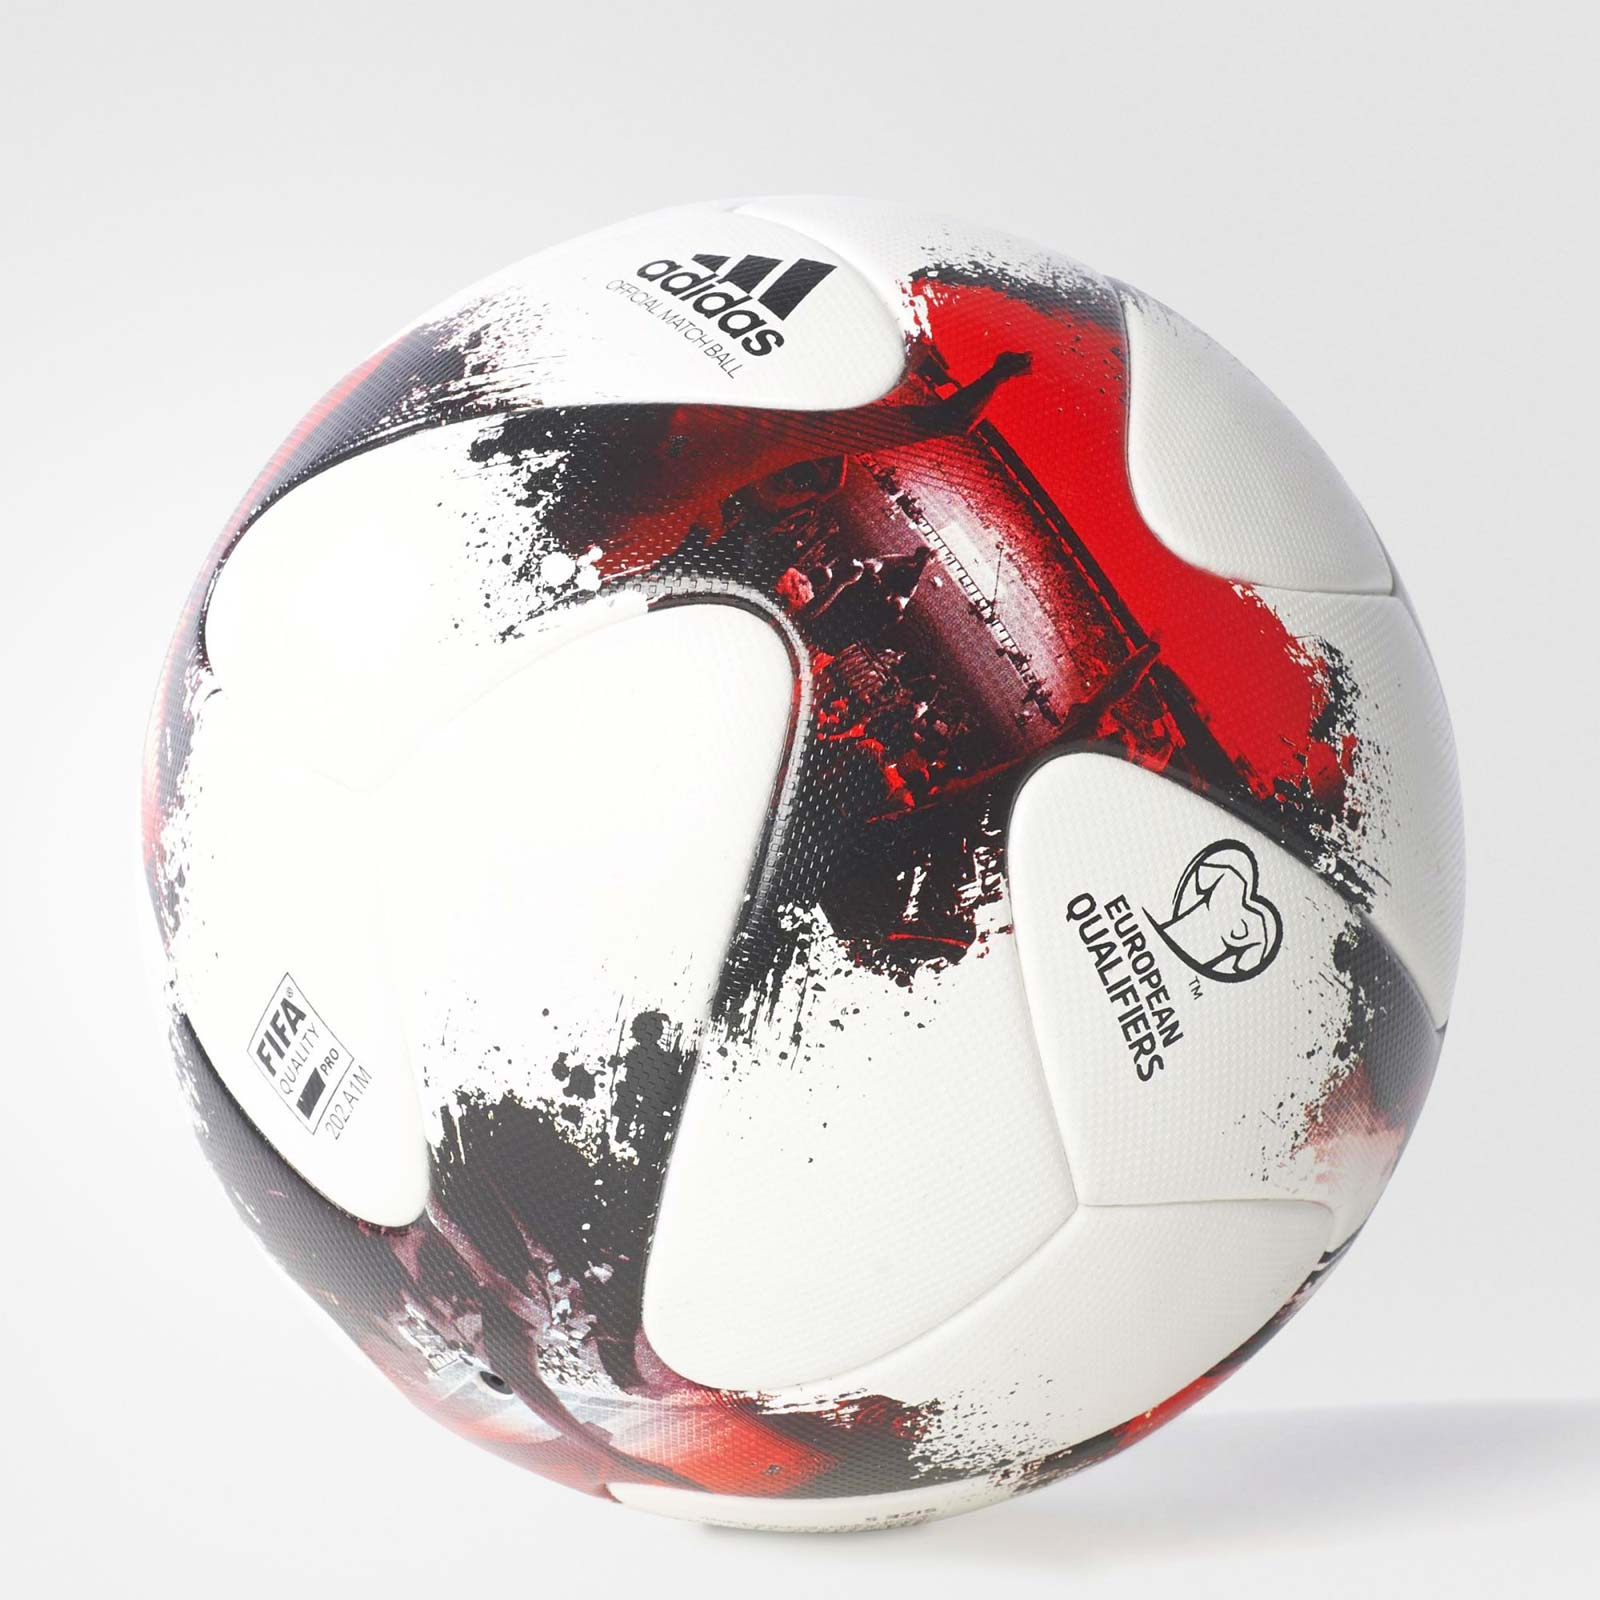 Wonderful Europe World Cup 2018 - adidas-2018-world-cup-european-qualifiers-ball-graphic  Photograph_272391 .jpg